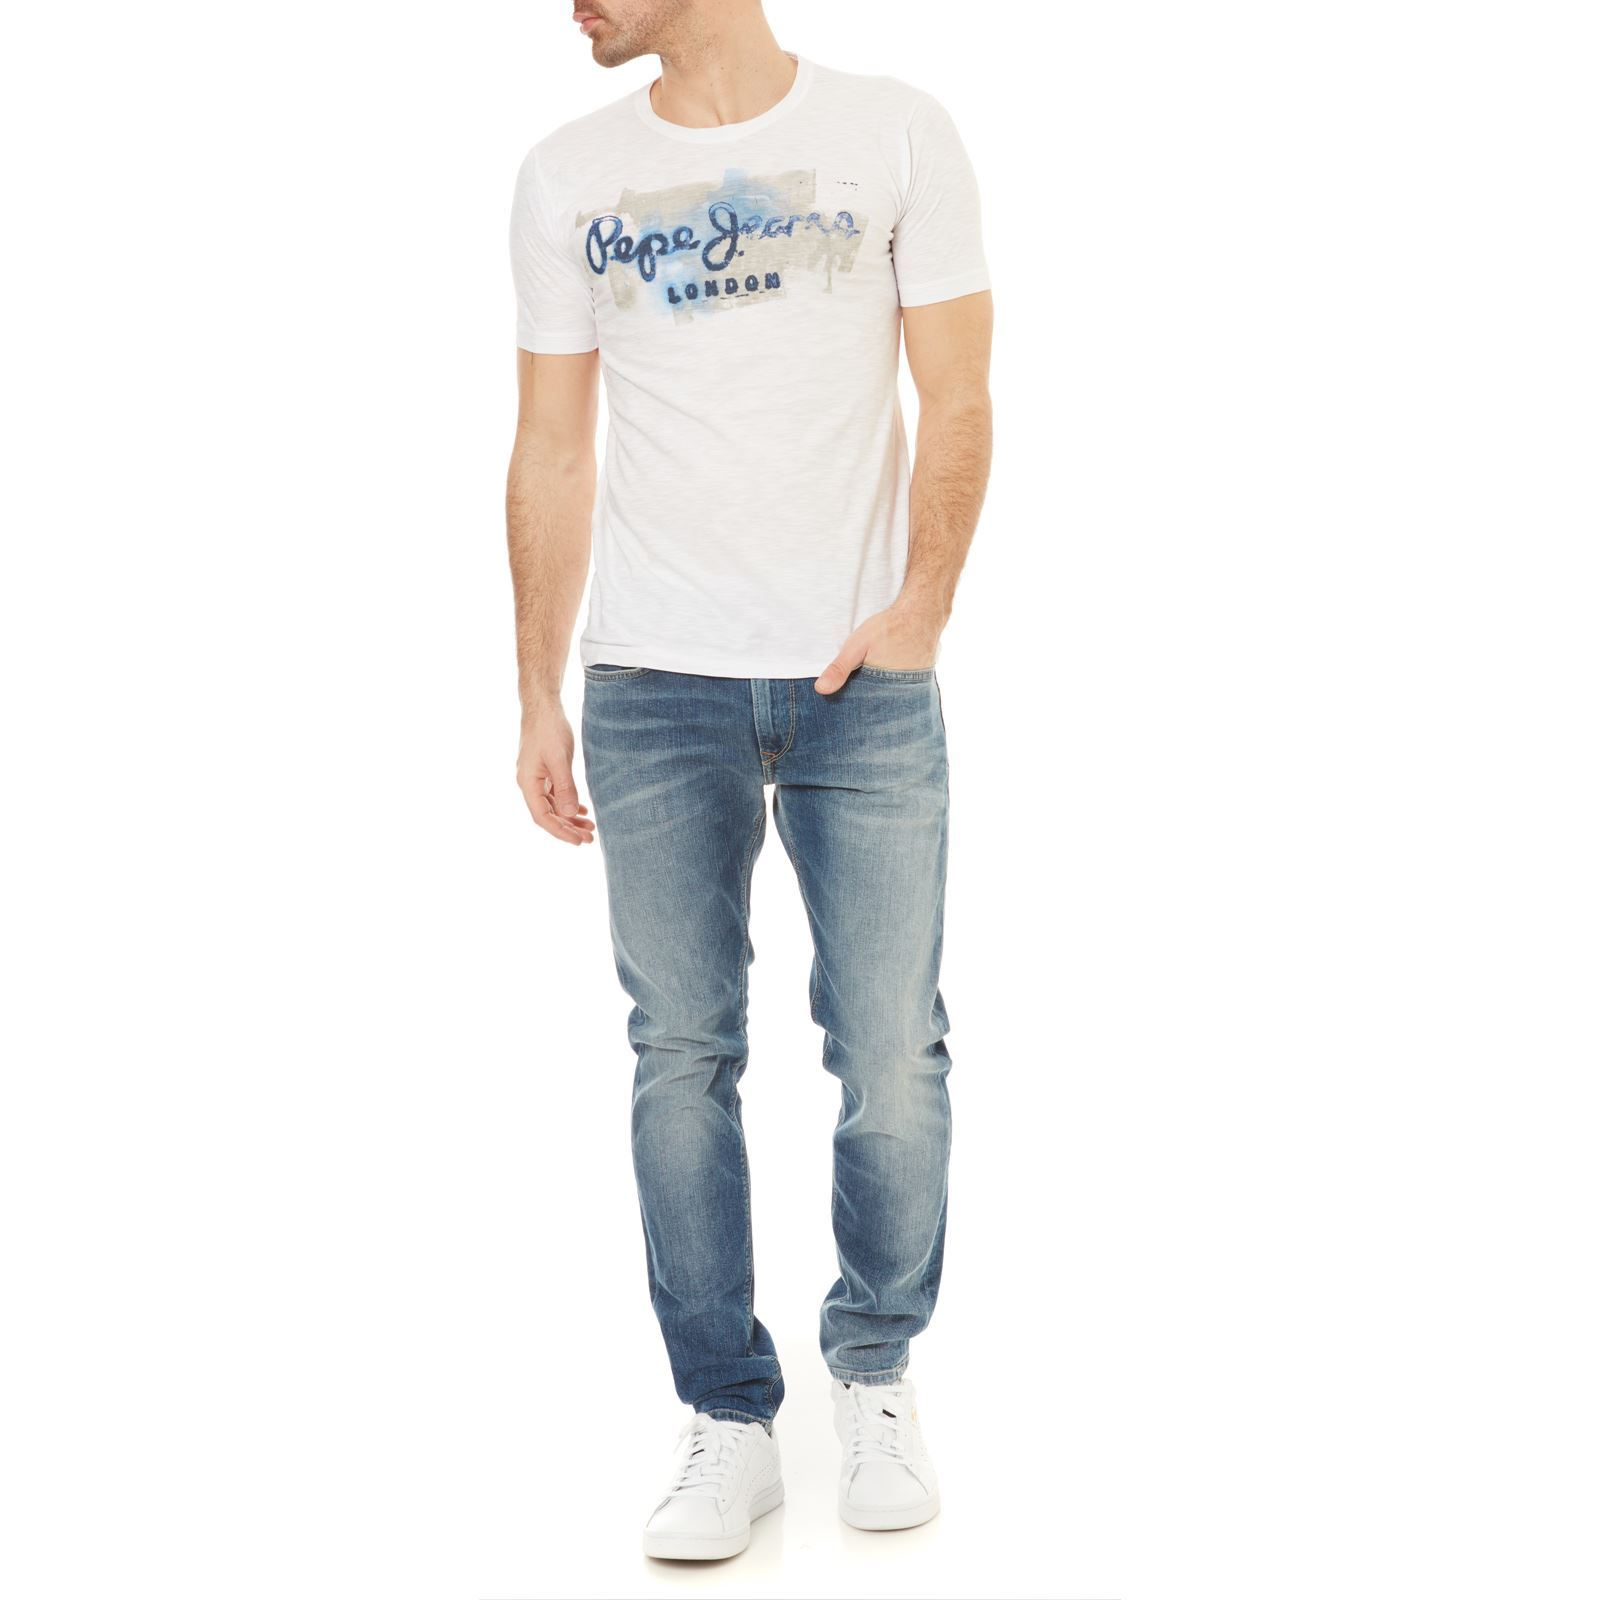 Jeans Manches T London Blanc shirt Pepe Golders Courtes zBfdfw